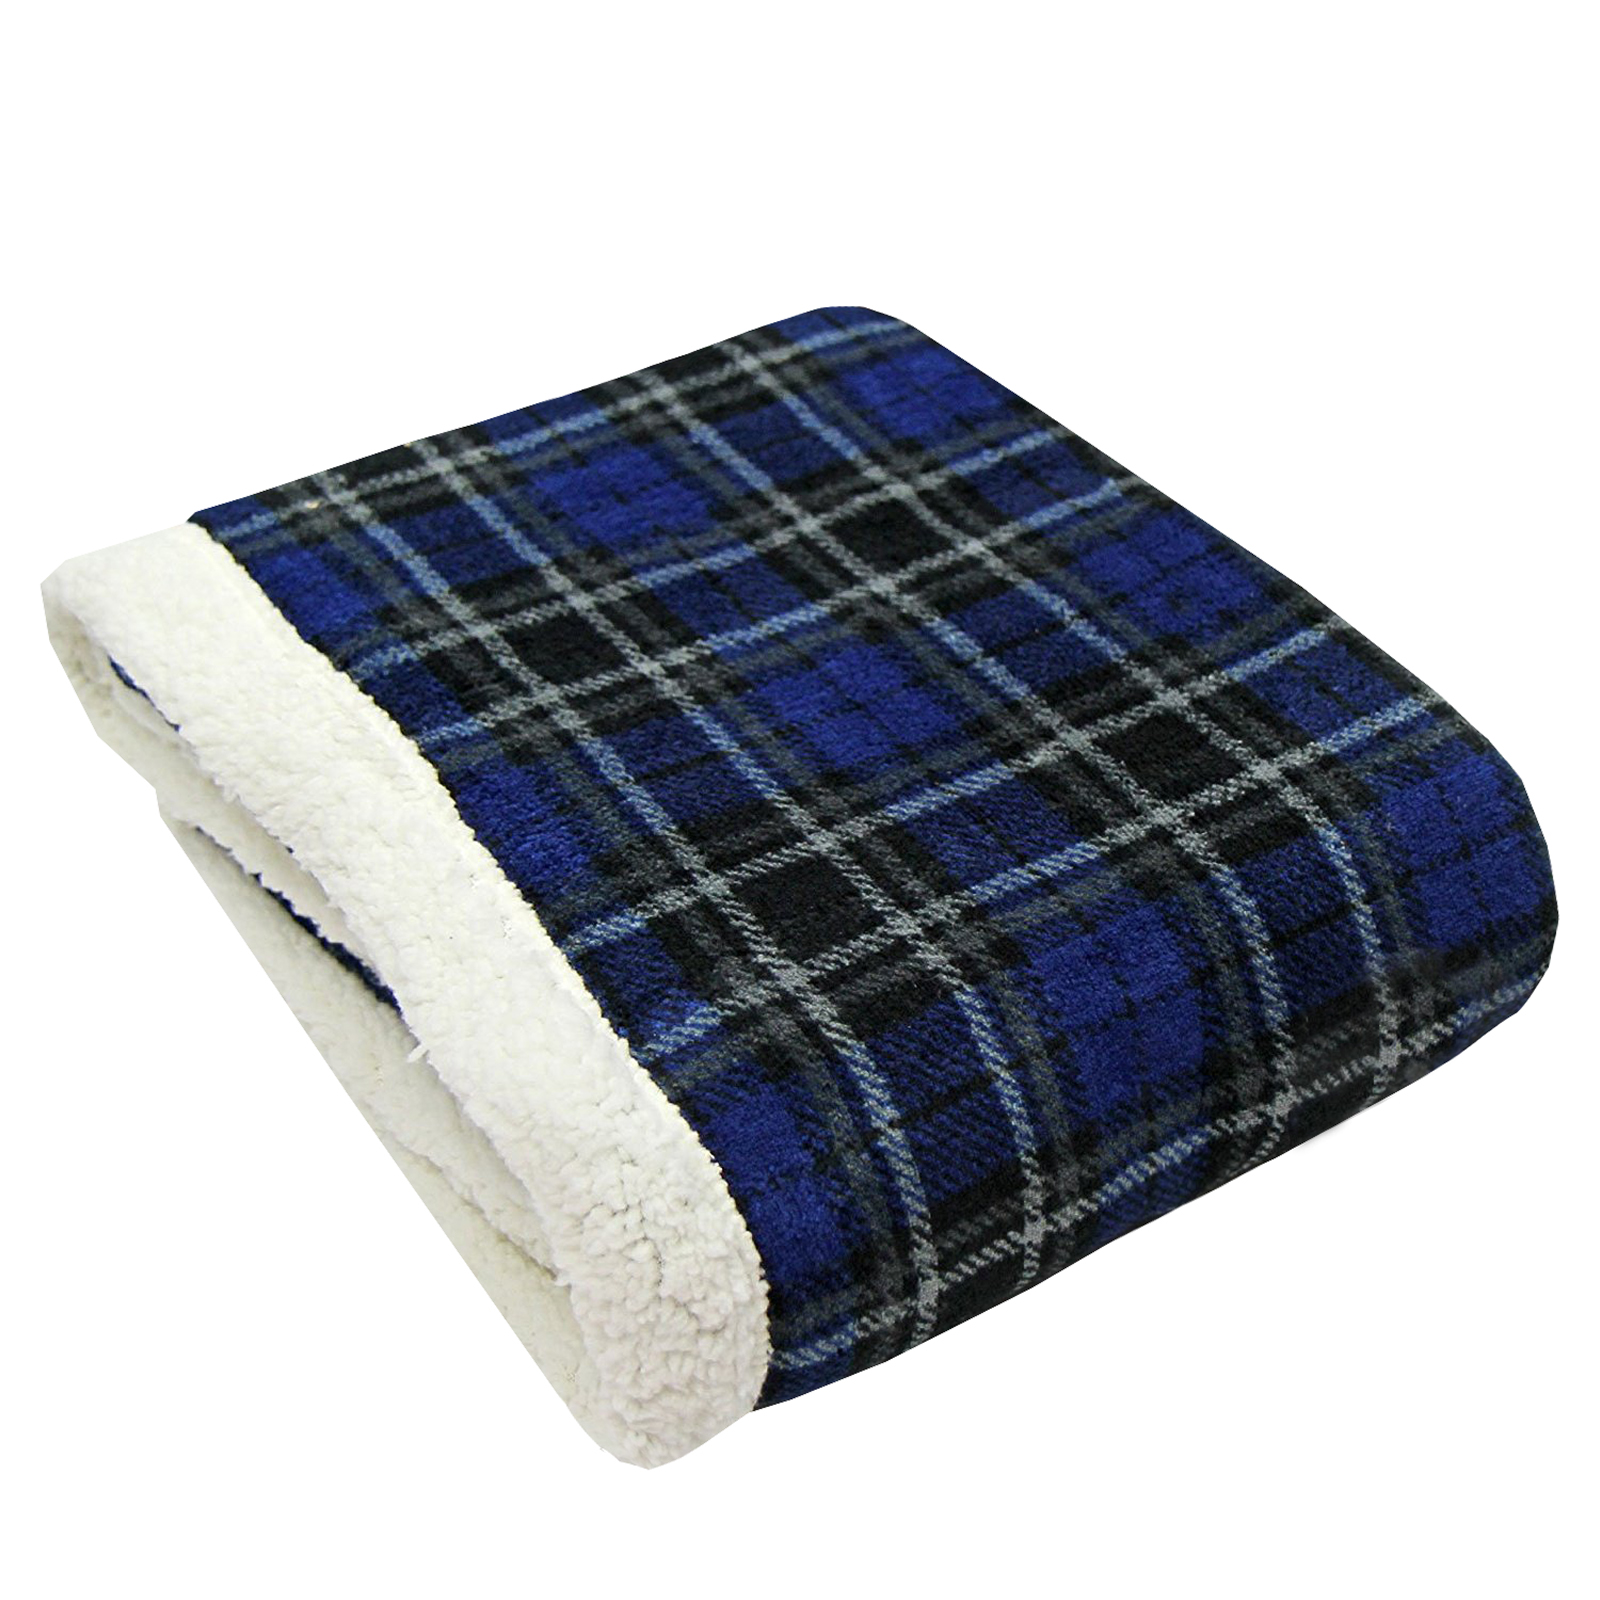 Tartan check sofa bed fleece throw super soft thermal for Soft blankets and throws